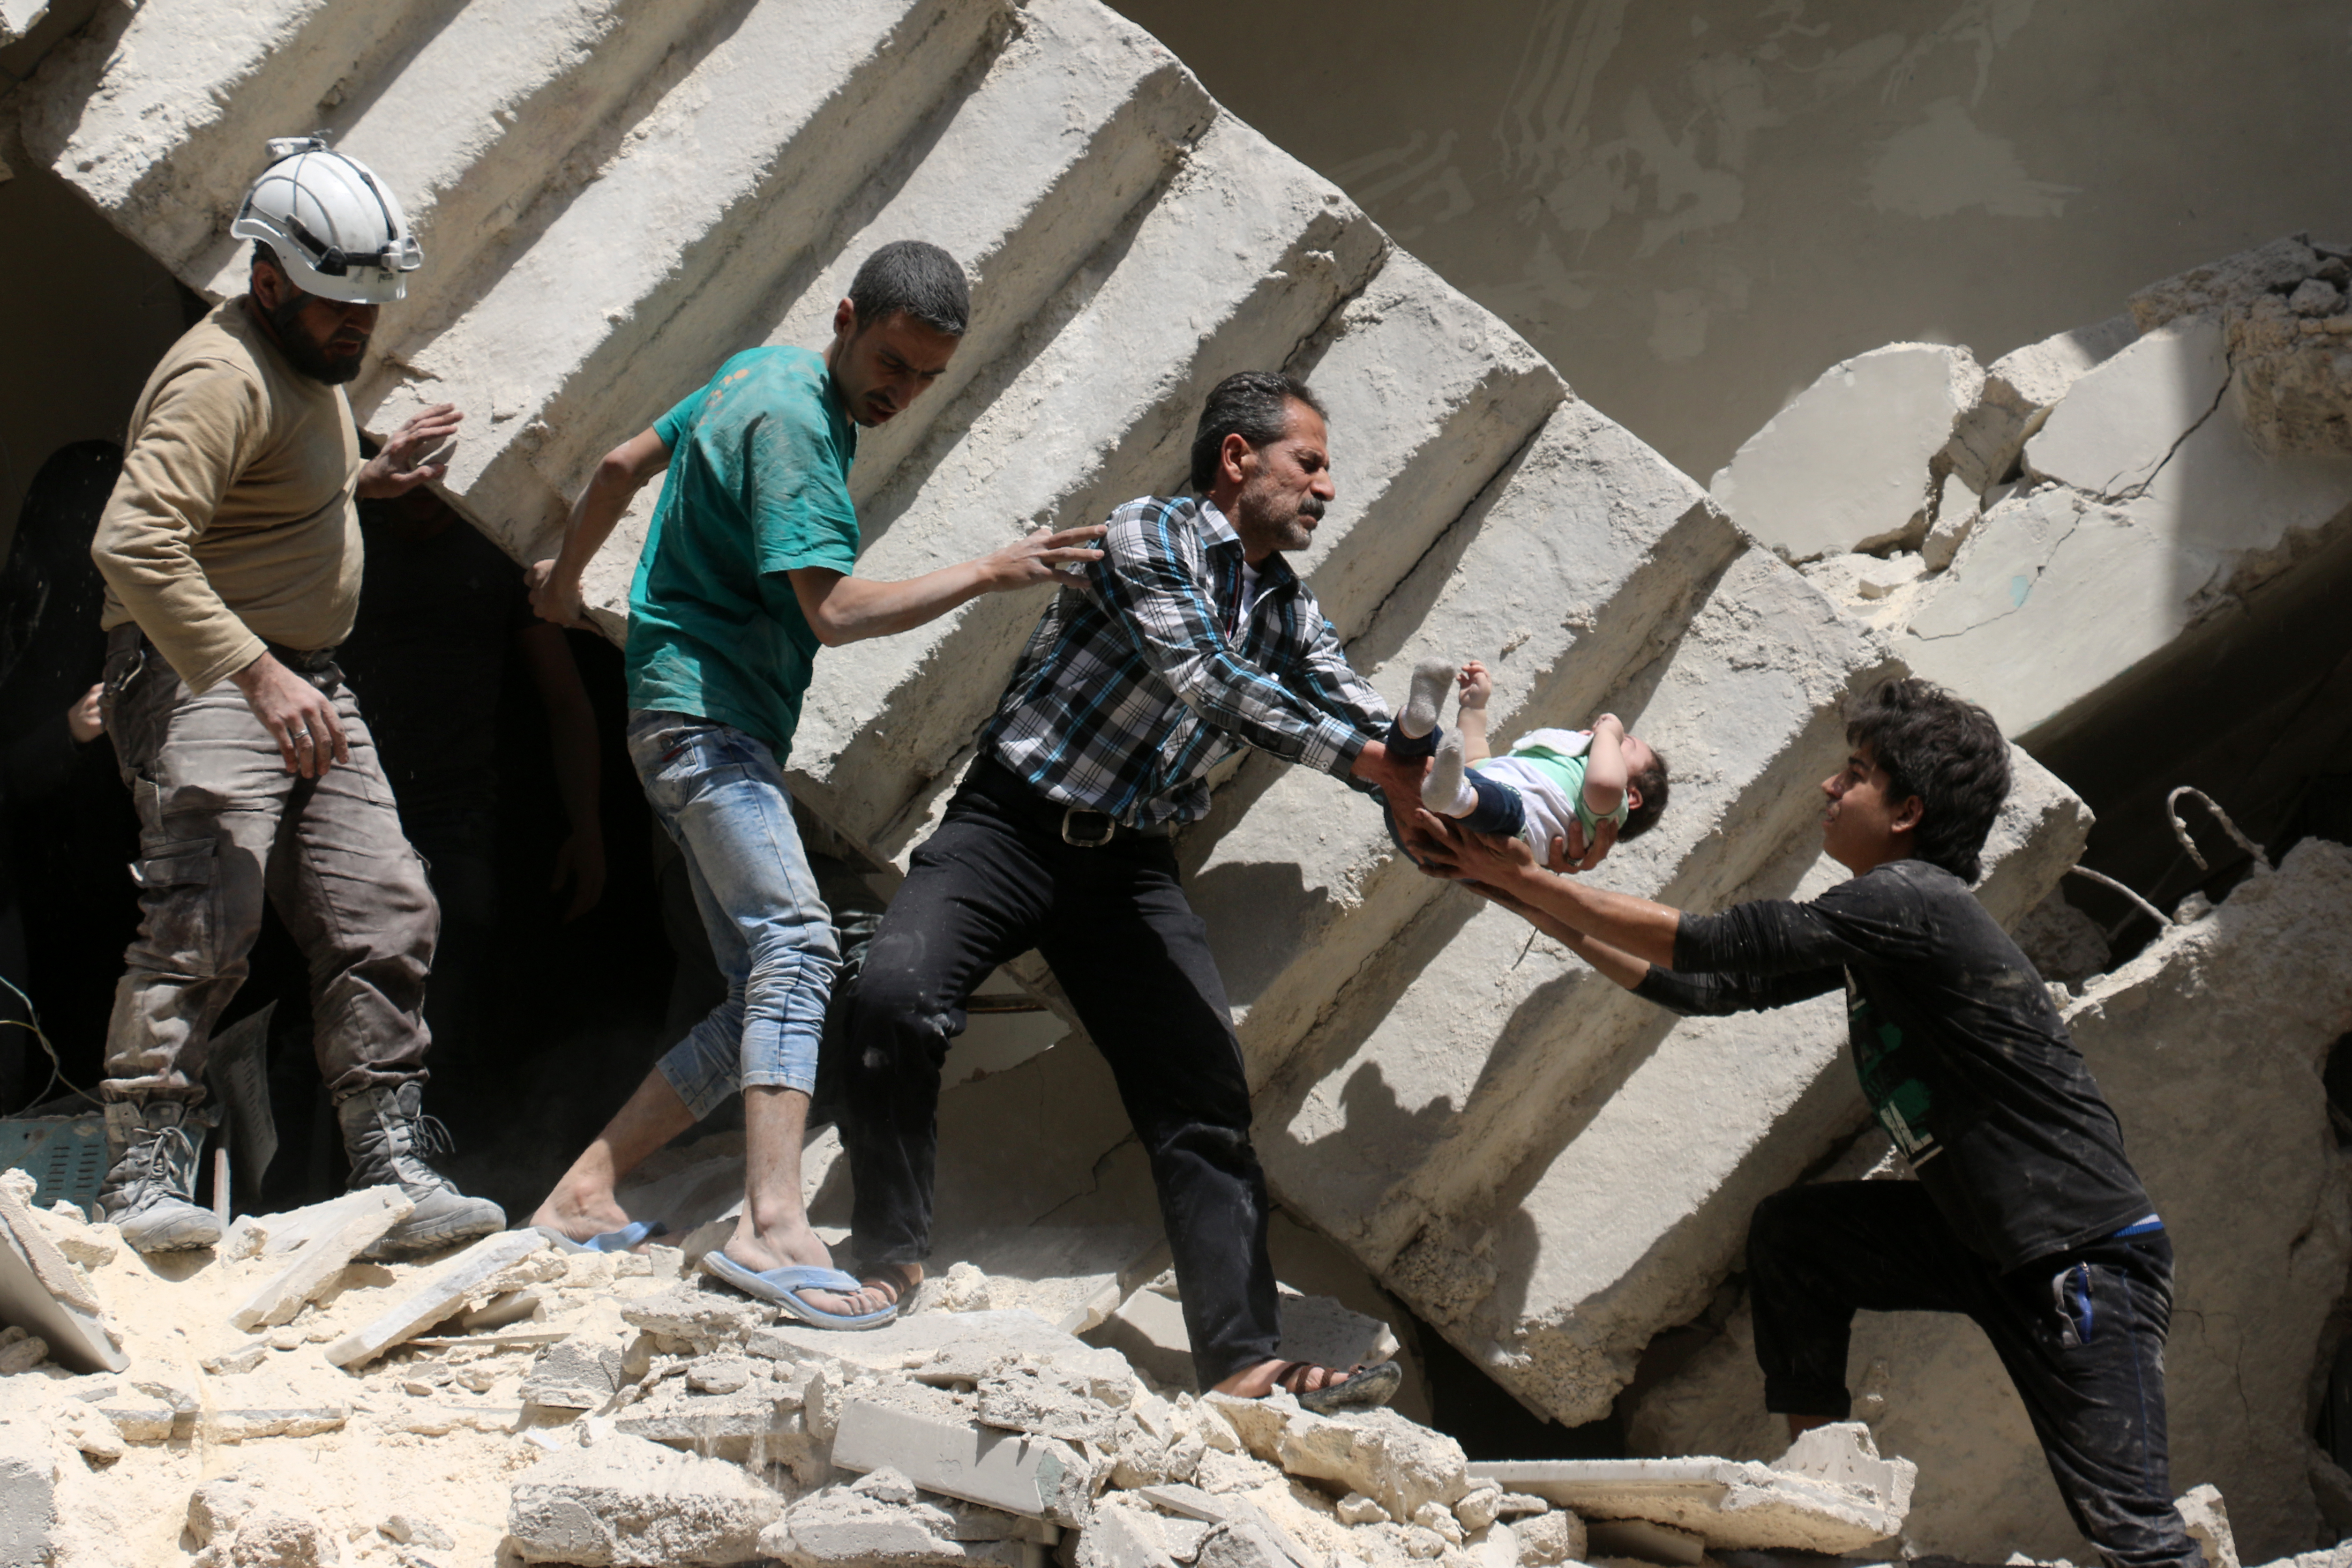 Syrian civil defence volunteers and rescuers remove a baby from under the rubble of a destroyed building following a reported air strike on the rebel-held neighbourhood of al-Kalasa in the northern Syrian city of Aleppo, on April 28, 2016.